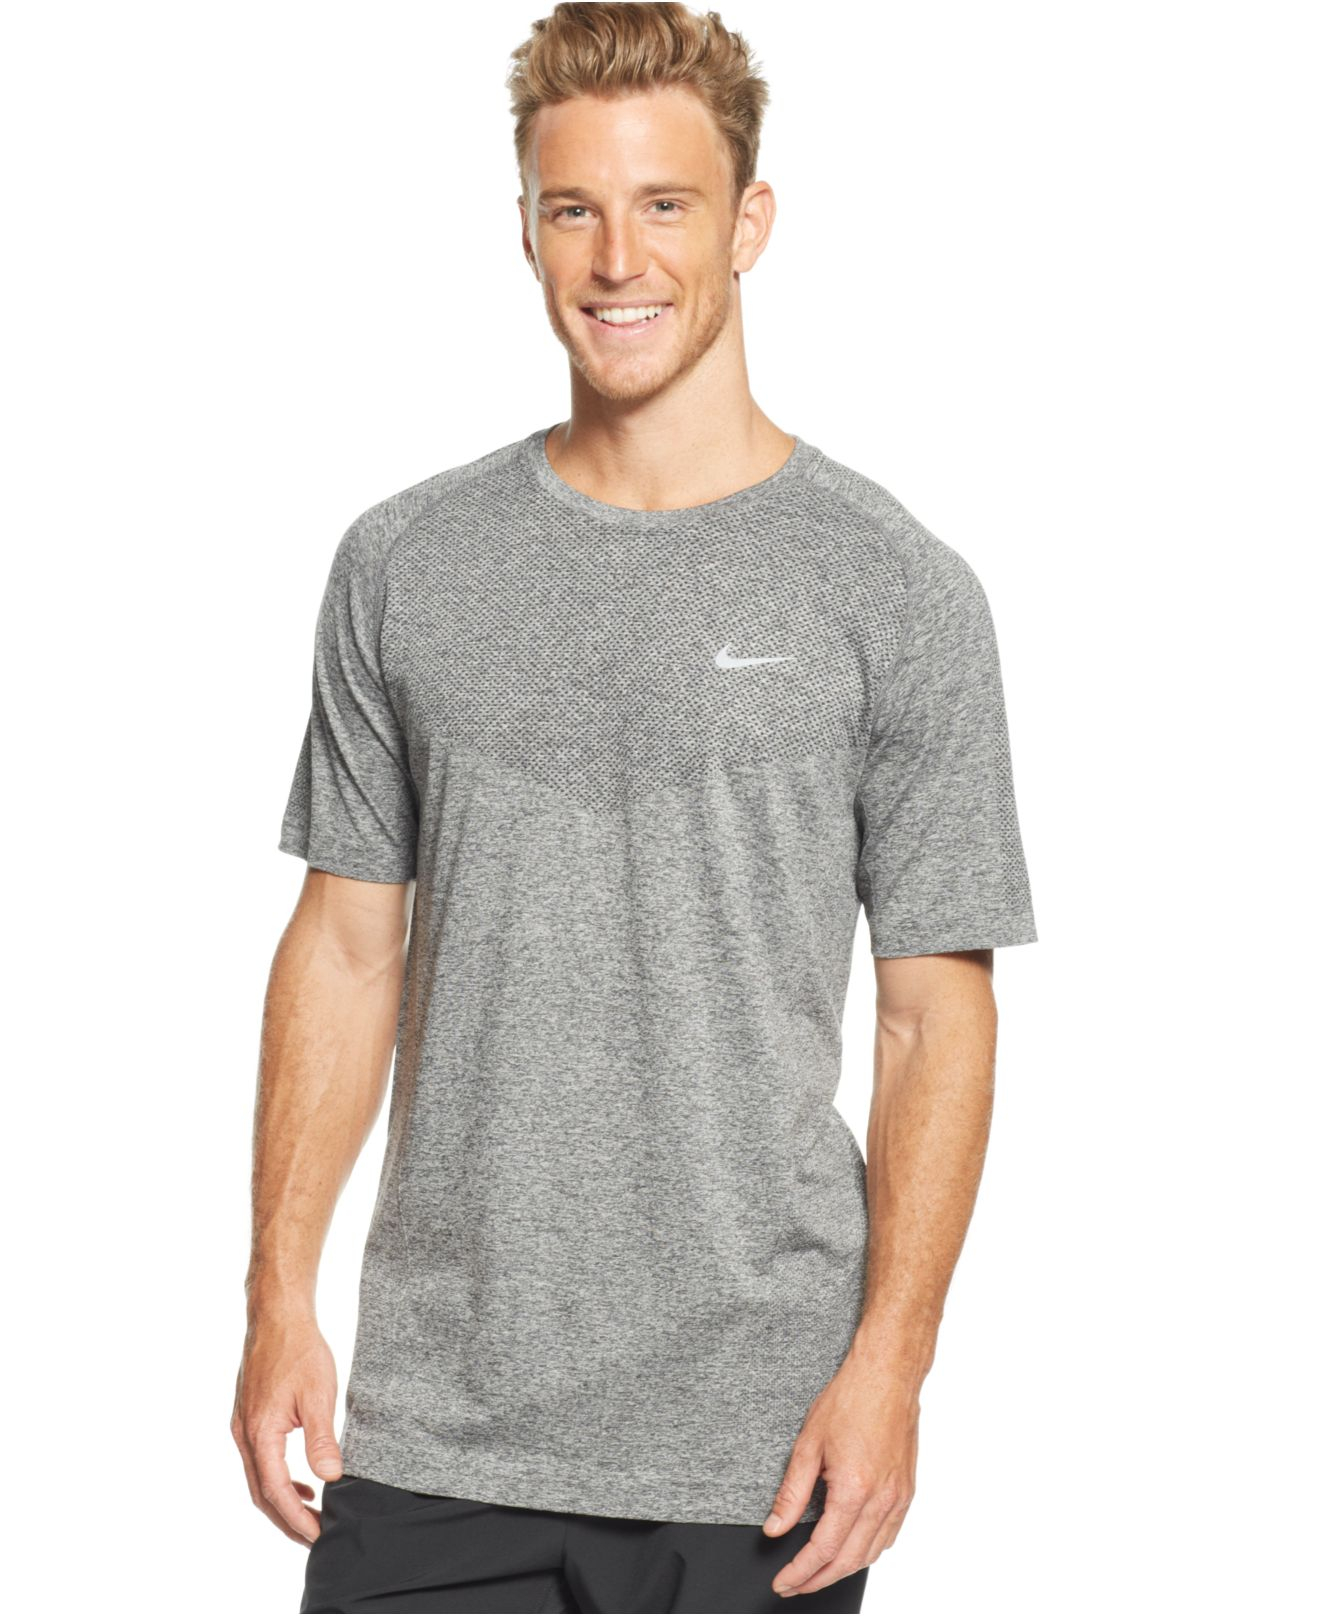 Lyst nike dri fit crew neck performance t shirt in gray for Custom dri fit t shirts